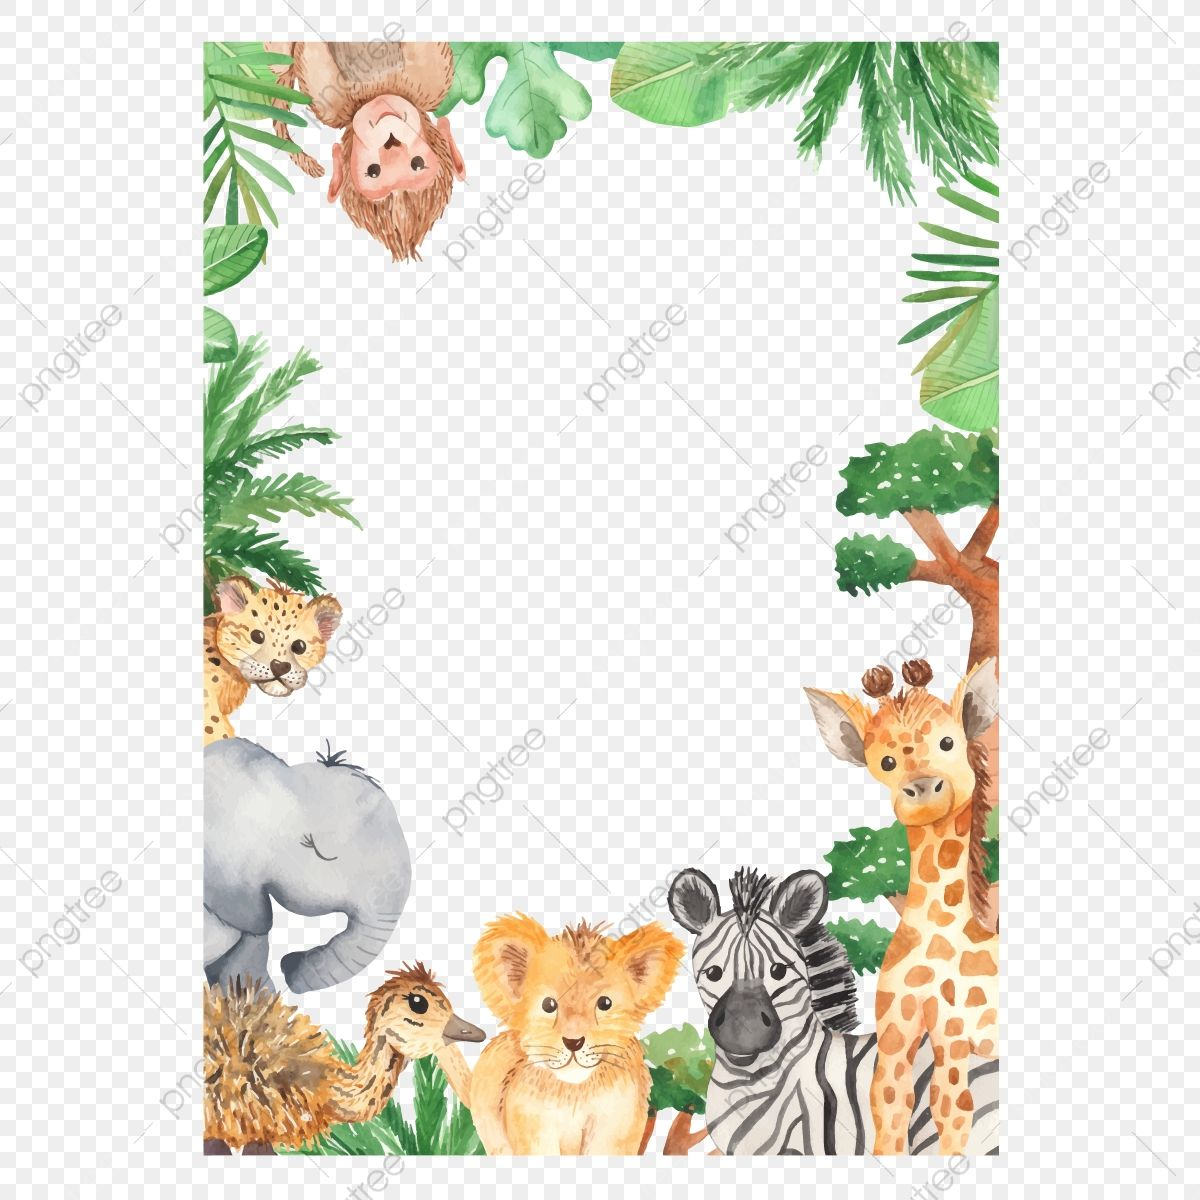 Download This Watercolor Frame With African Animals And Palm Africa Animal Baby Transparent Png Or Vector File For Fr African Animals Zoo Clipart Watercolor